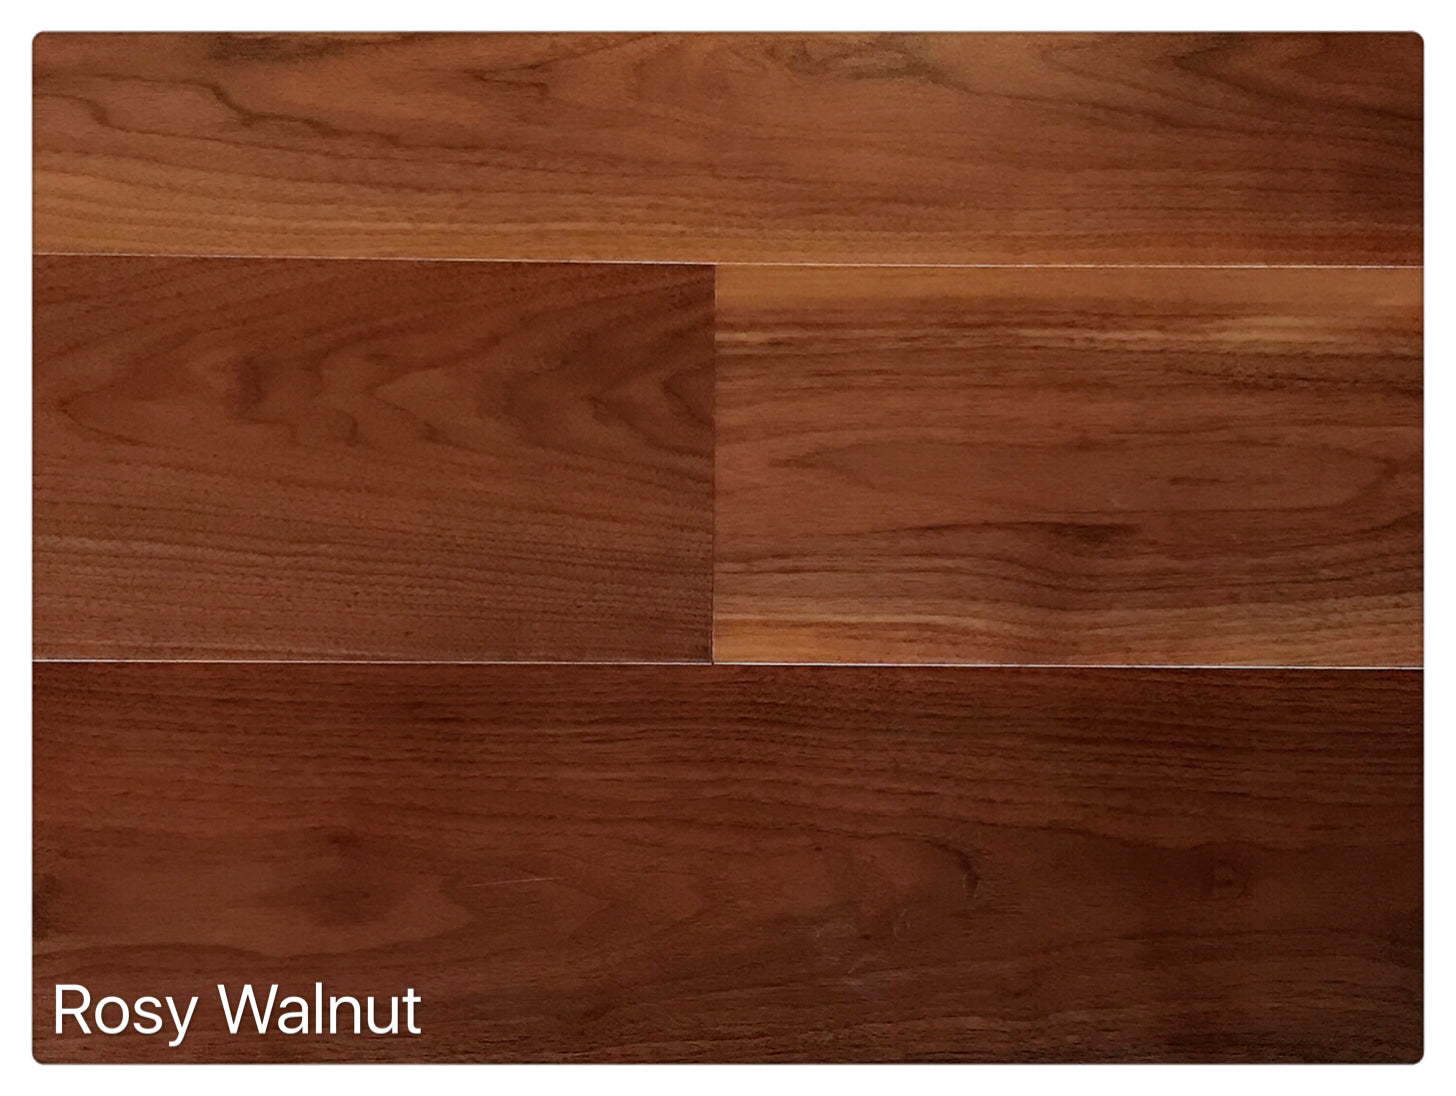 "SPX ORDER 1-2DAYS ENGINEERED HARDWOOD ROSY WALNUT 30.27SF/BX 9/16X7.5"" $6.54/SF $197.97/BOX - Home Idol Home Improvement Outlet"